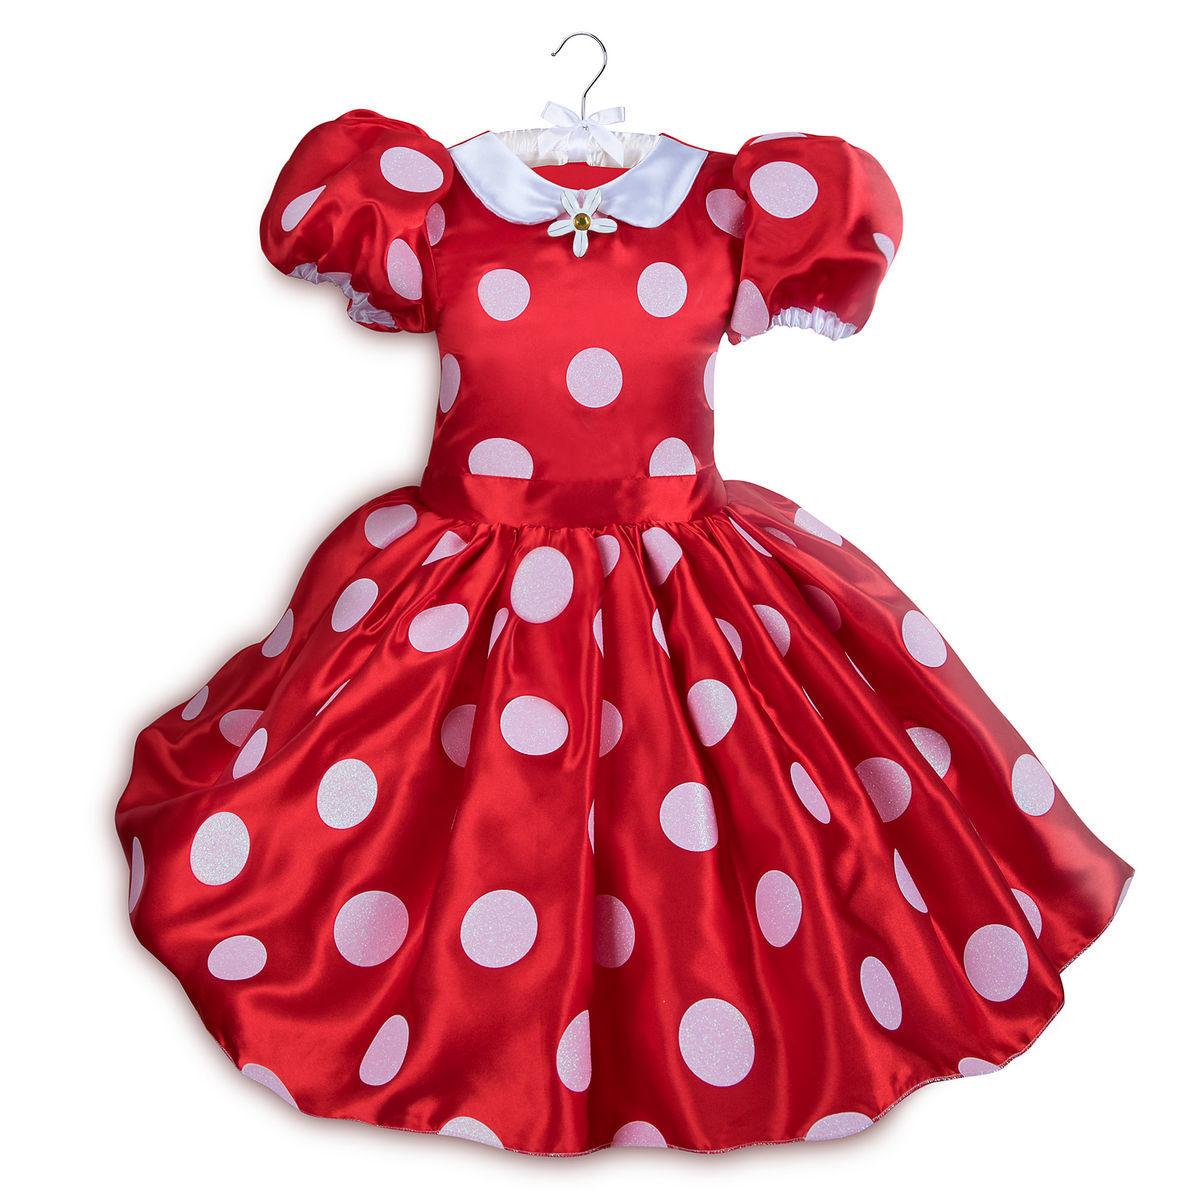 minnie mouse red dress costume for kids shopdisney